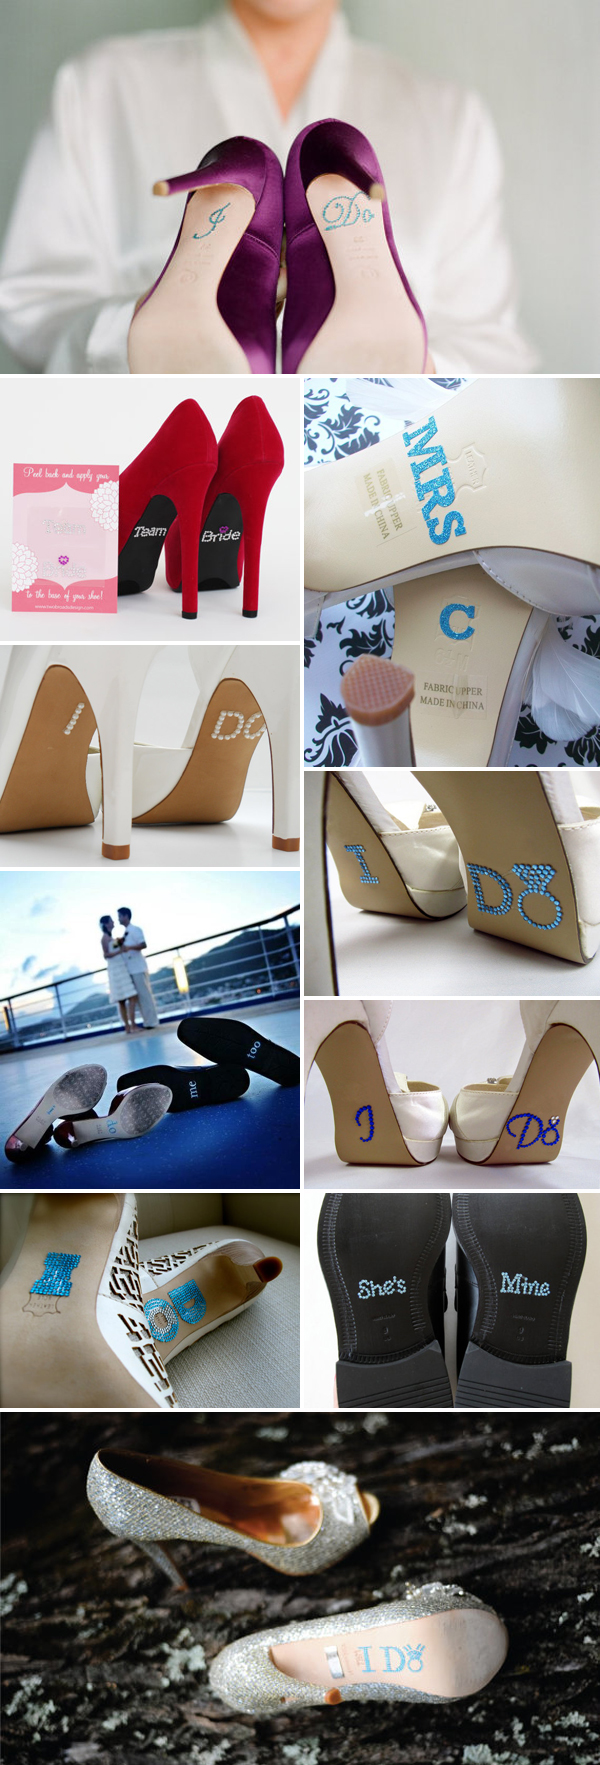 ST_bridal_shoe_stickers